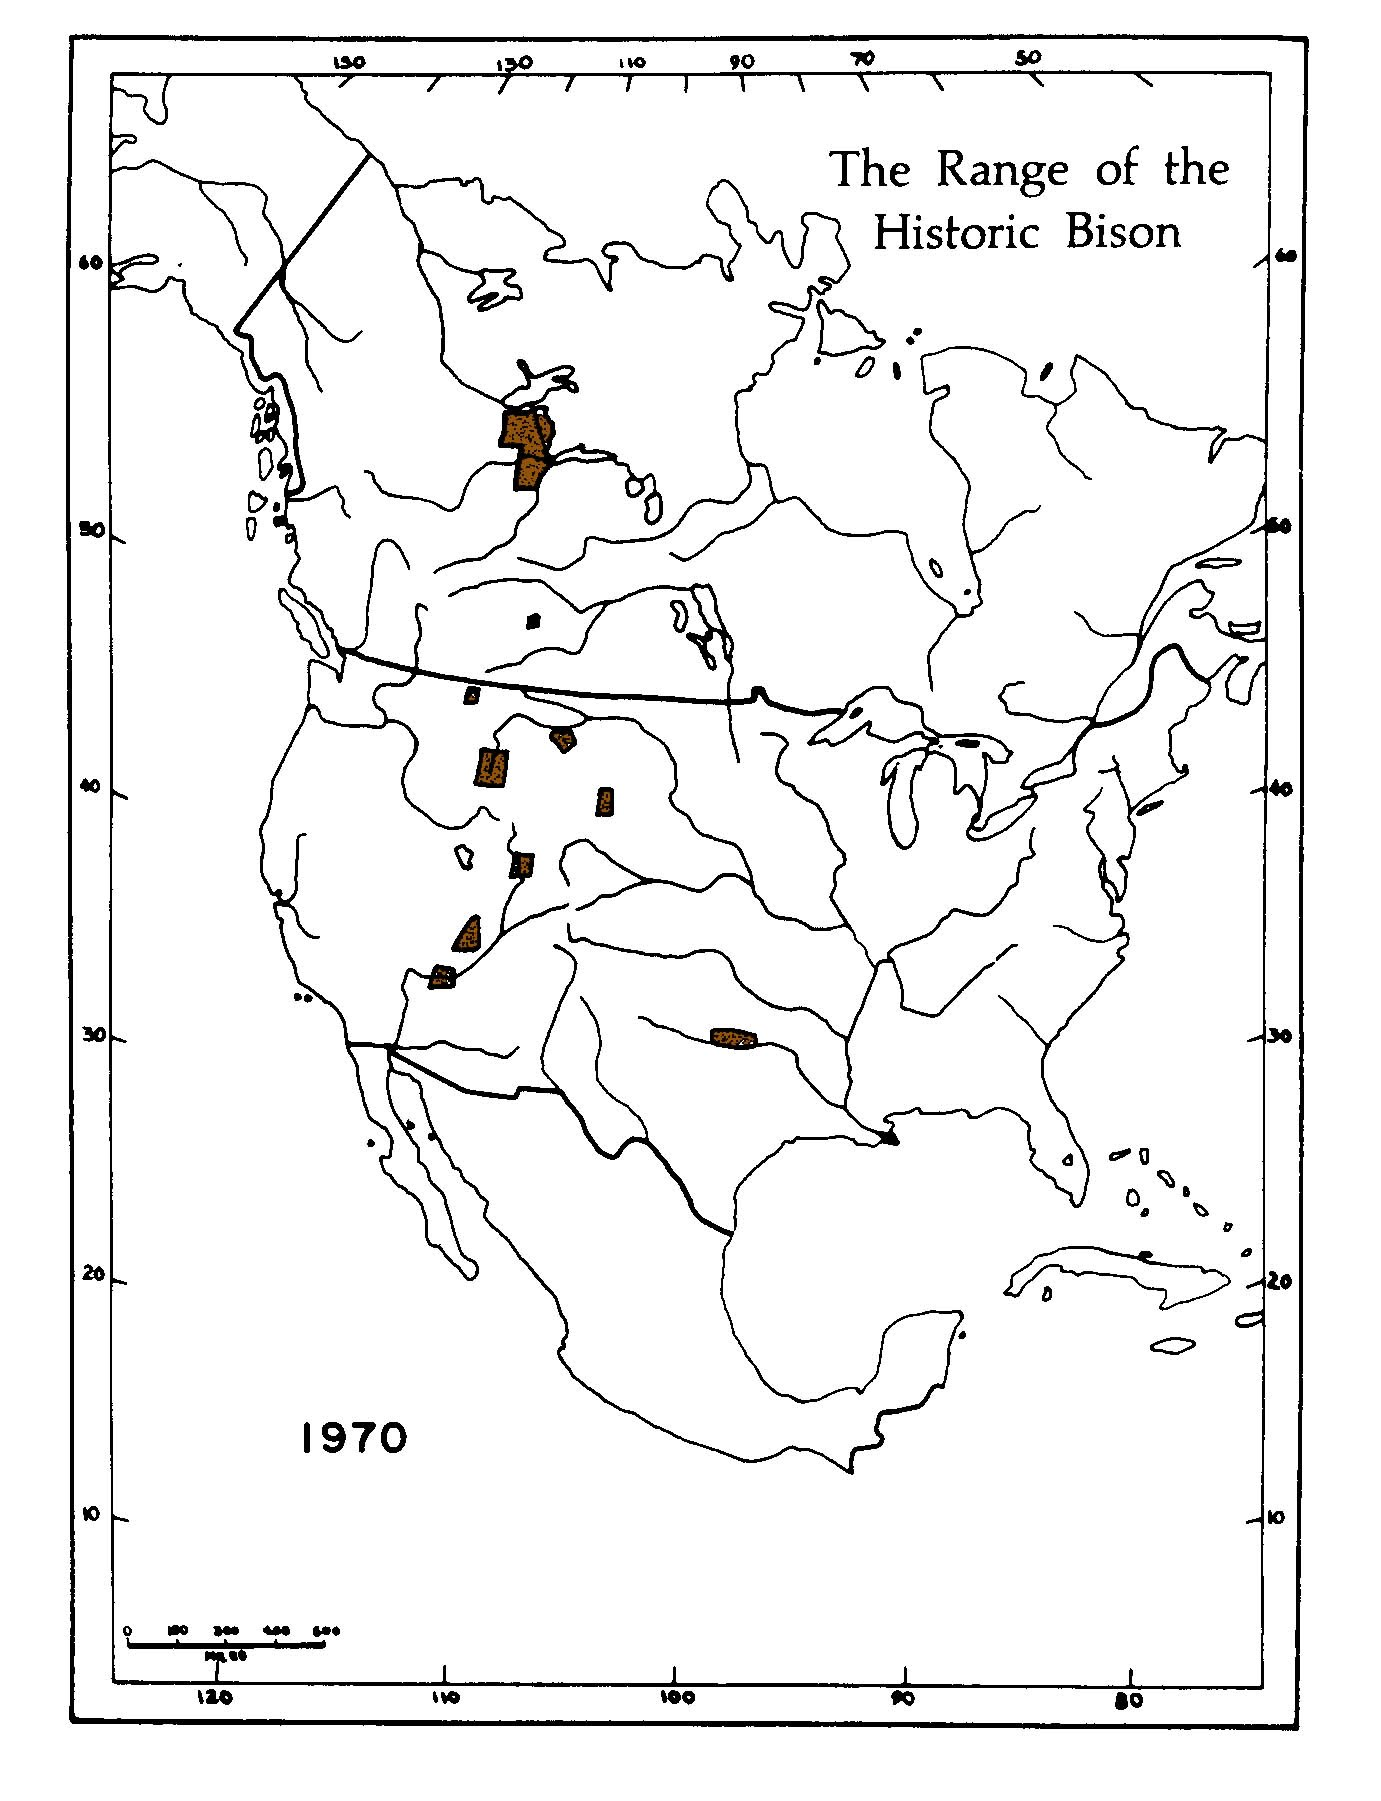 Bison range in 1970